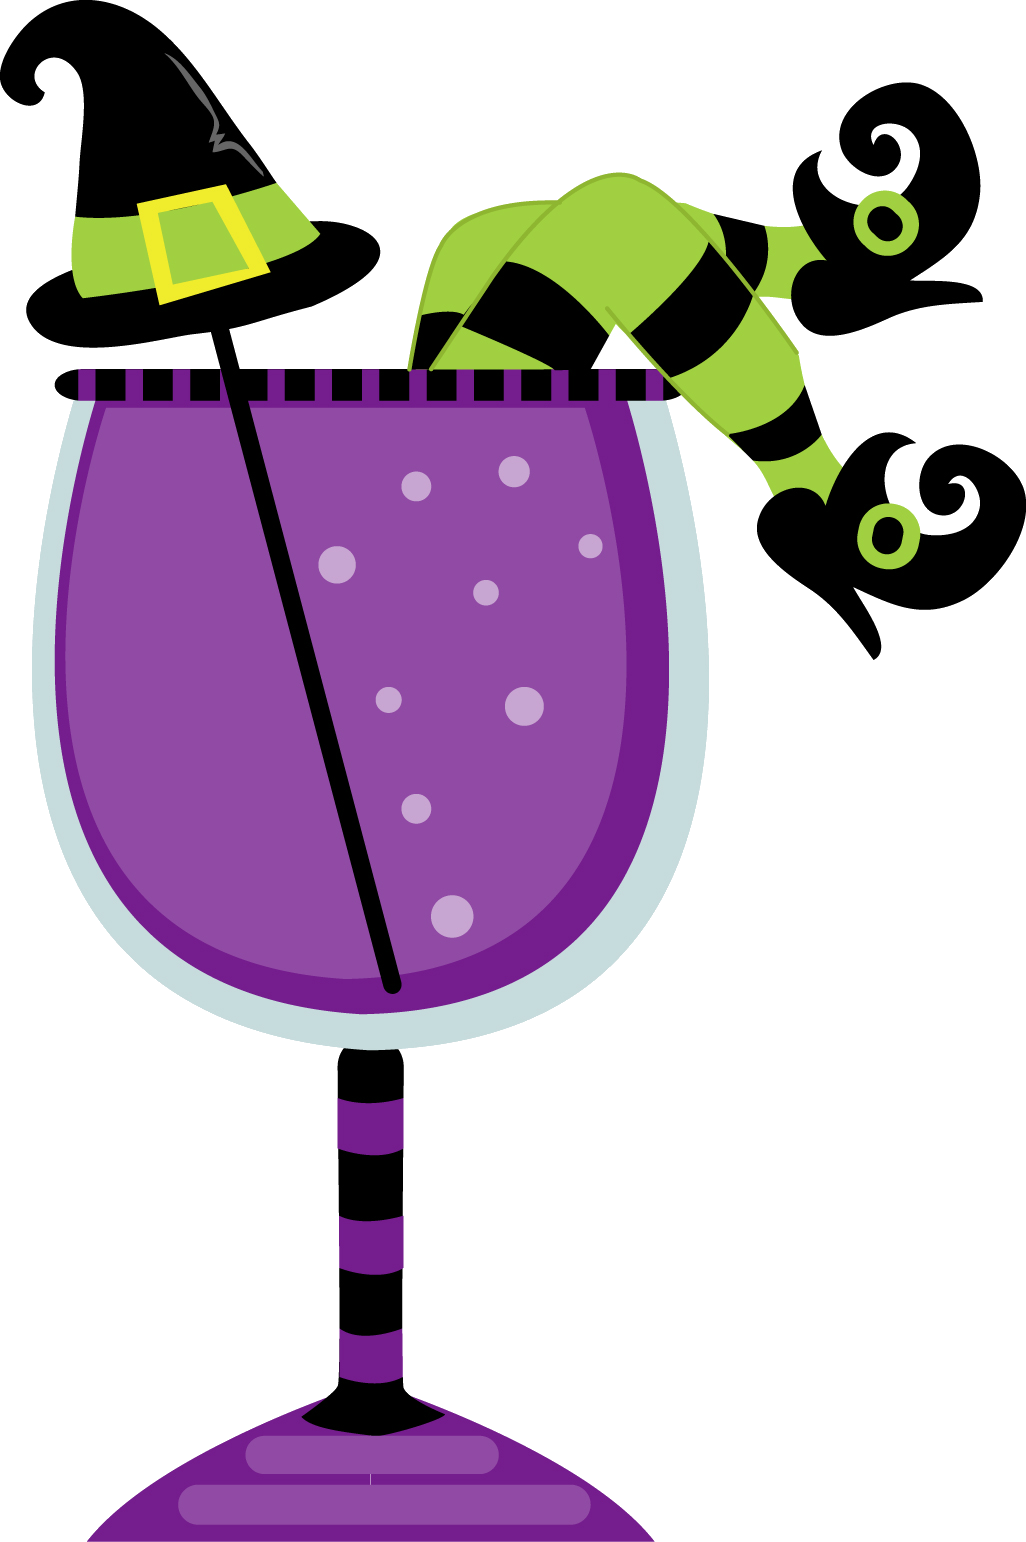 Halloween drinks clipart picture freeuse library PNG (Halloween) | Silhouette cameo | Pinterest | Cricut picture freeuse library